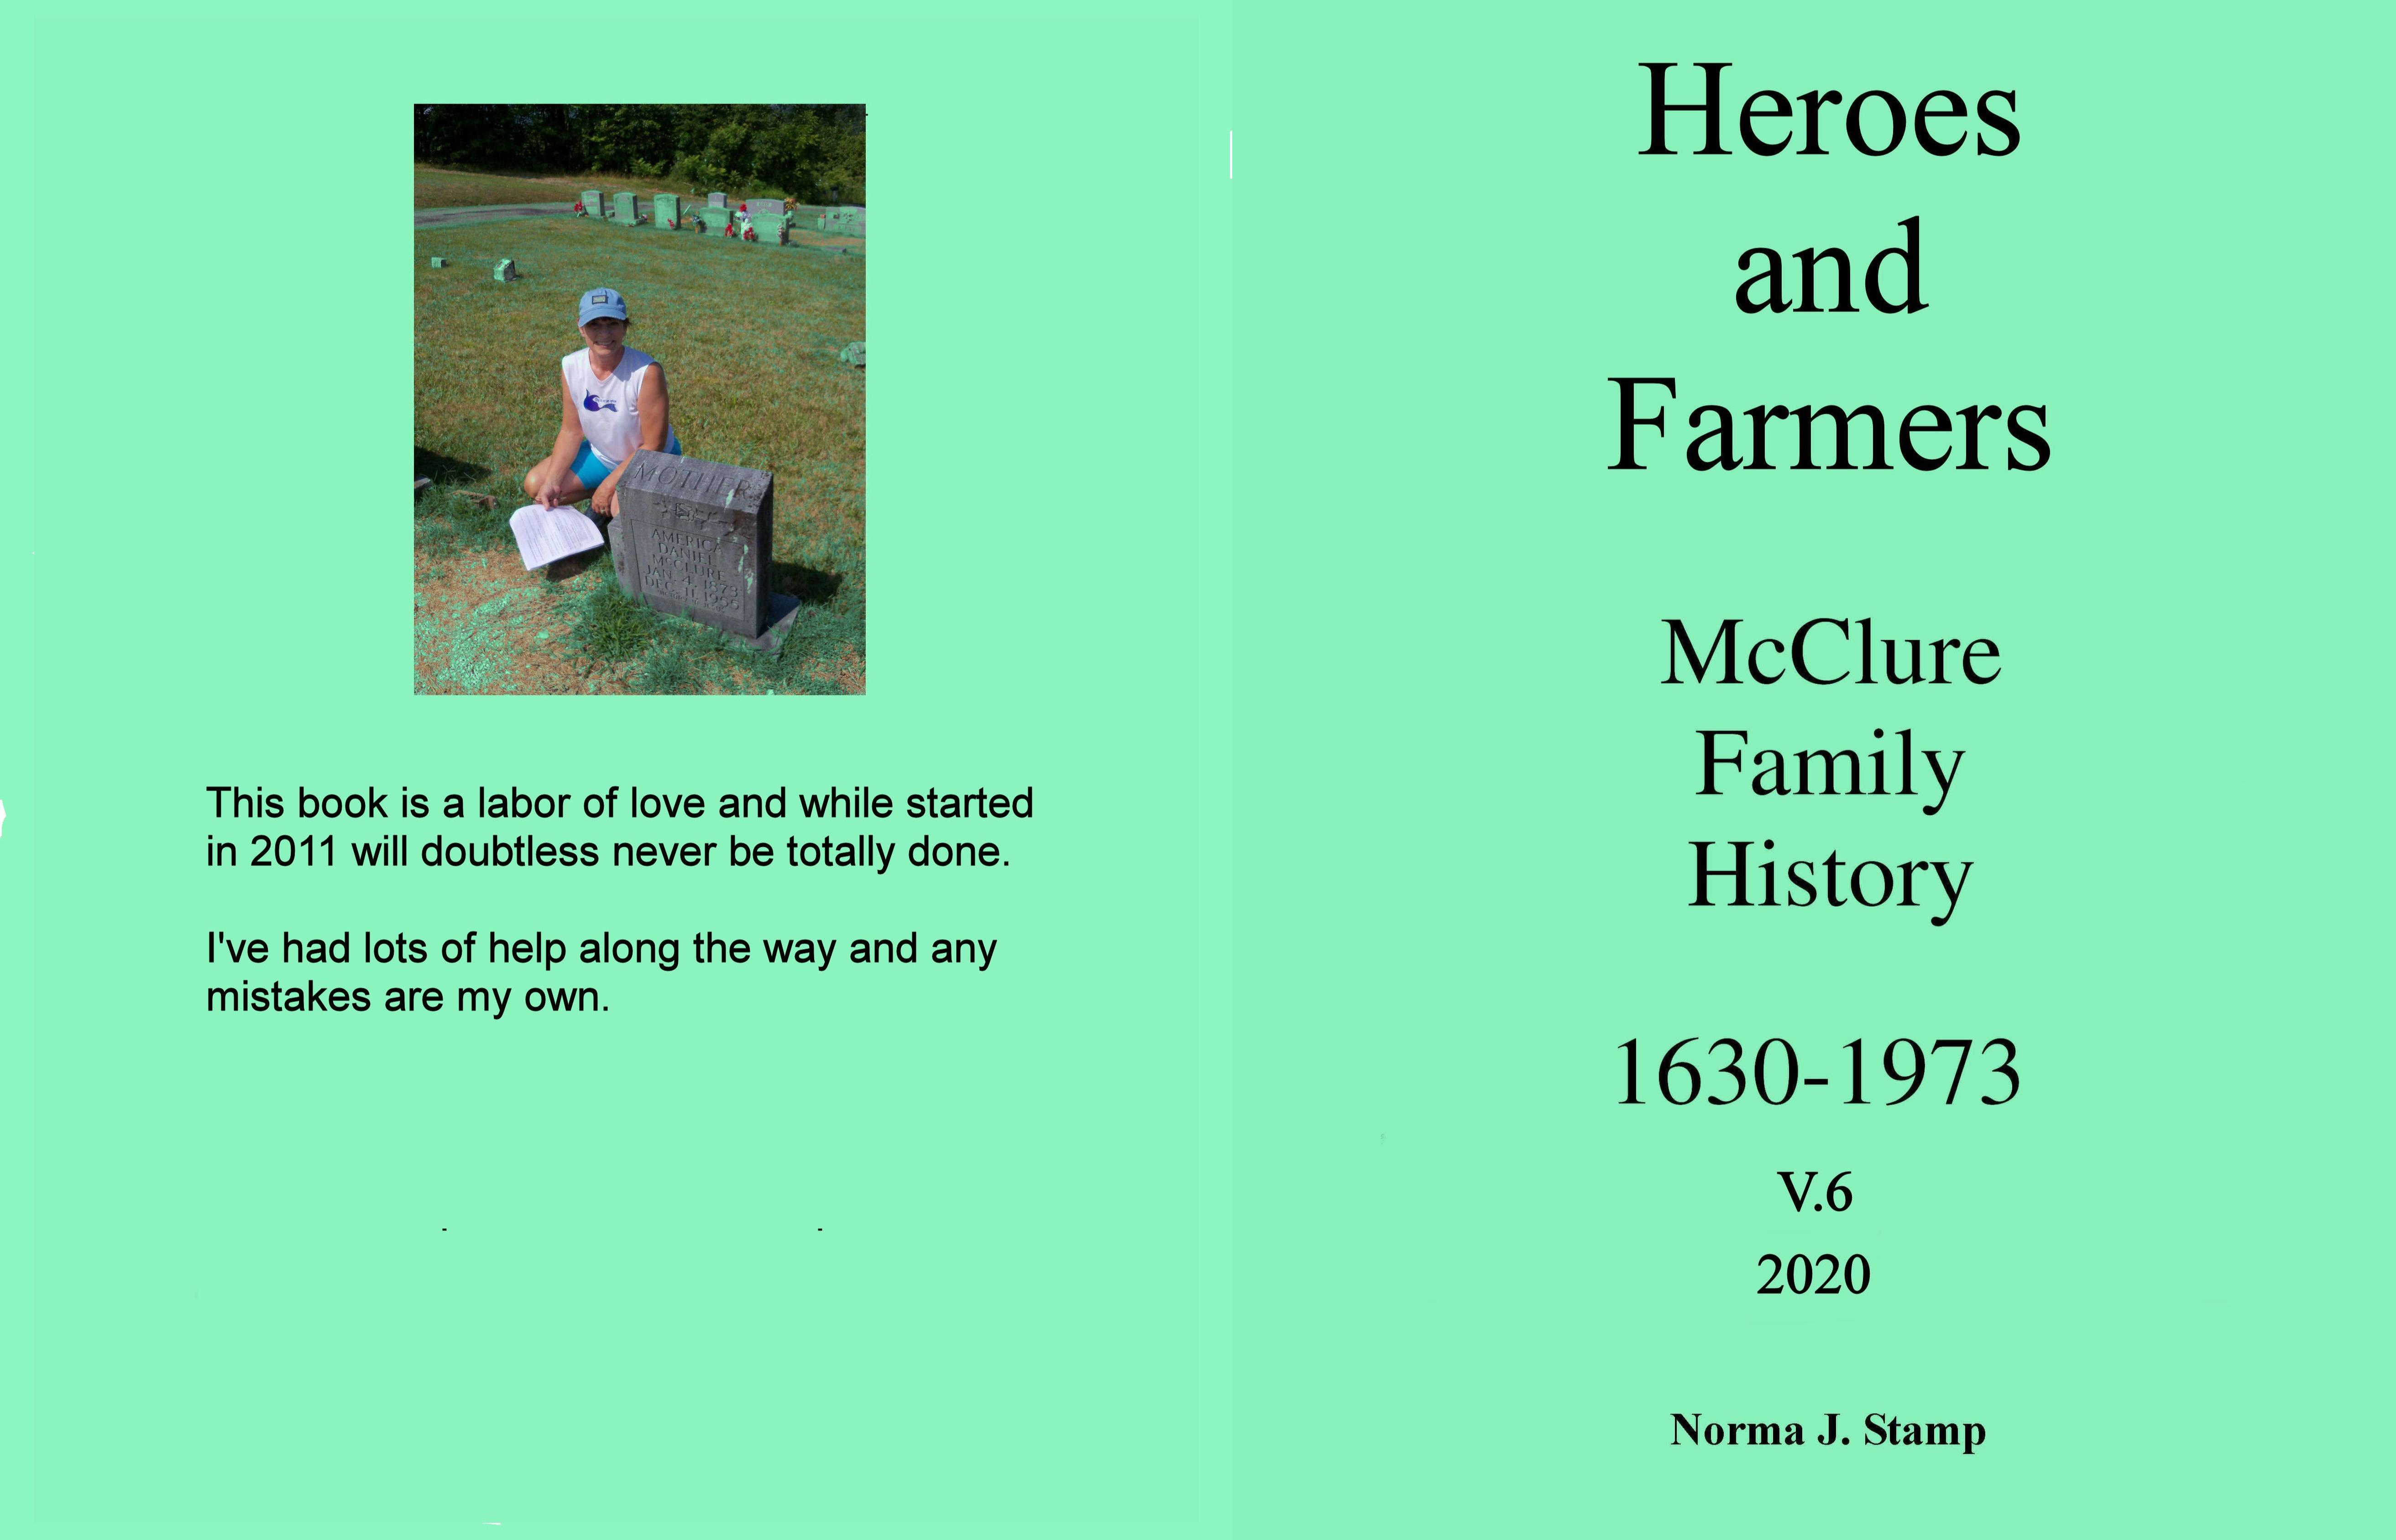 Heroes and Farmers McClure Family History 1630-1973 cover image